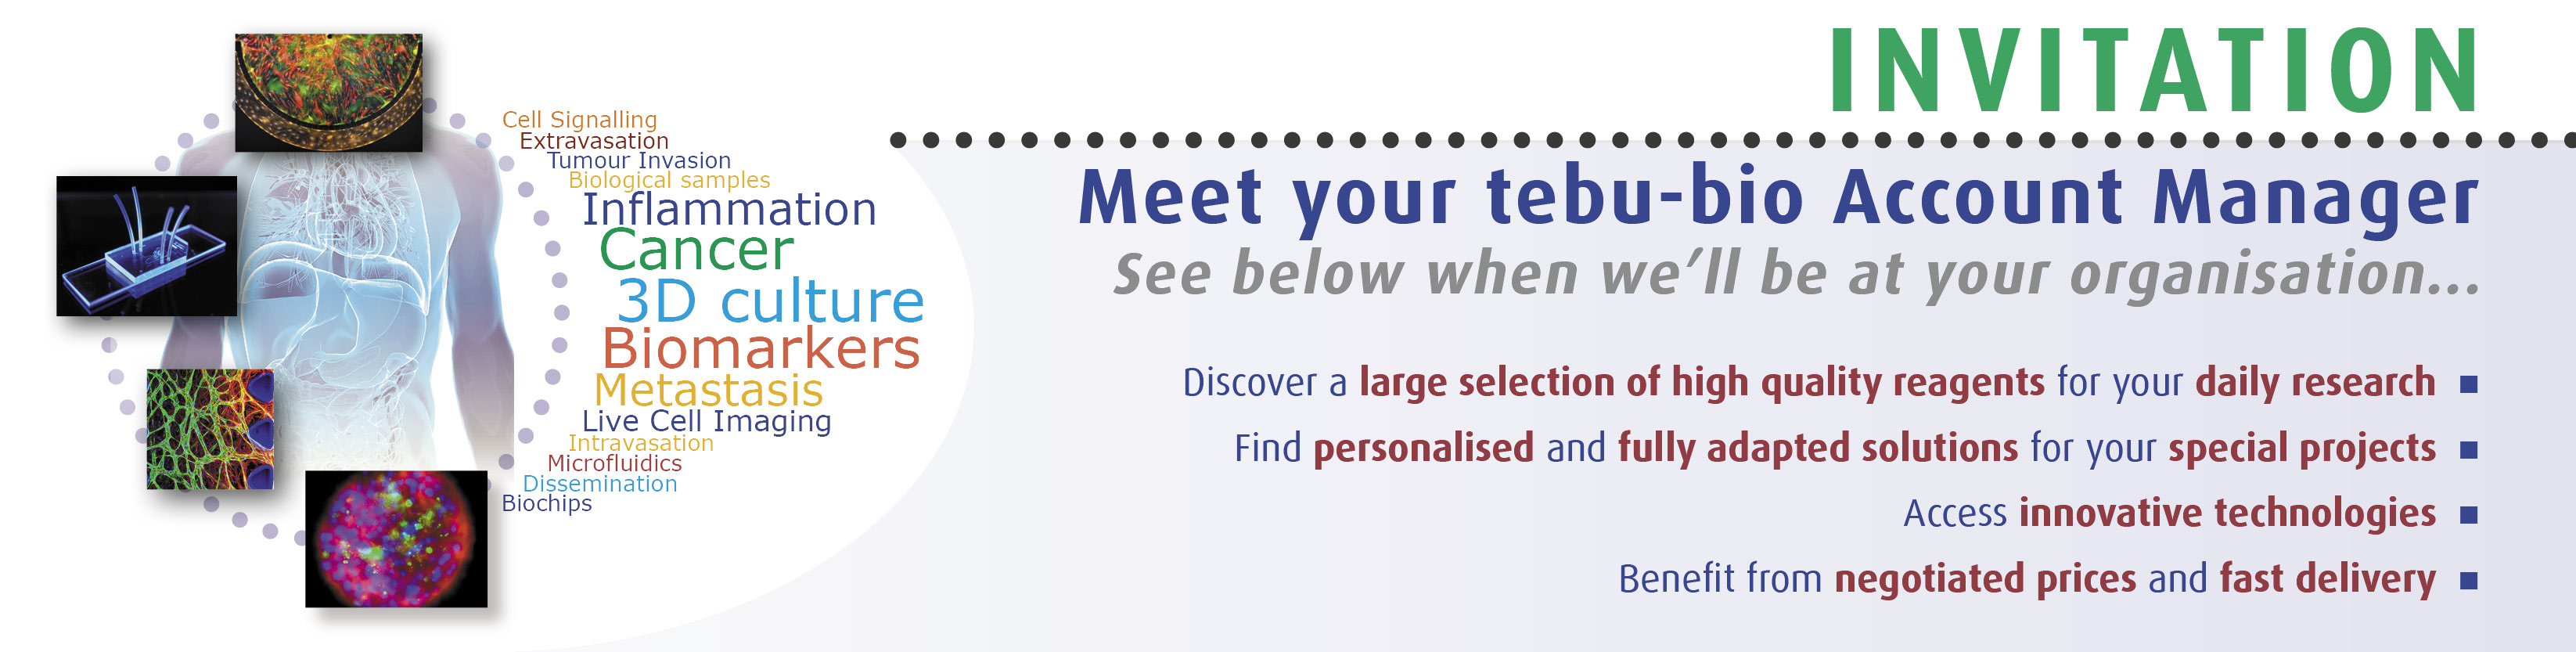 tebu-bio will be at Meet your tebu-bio Account Manager - I2MC Toulouse